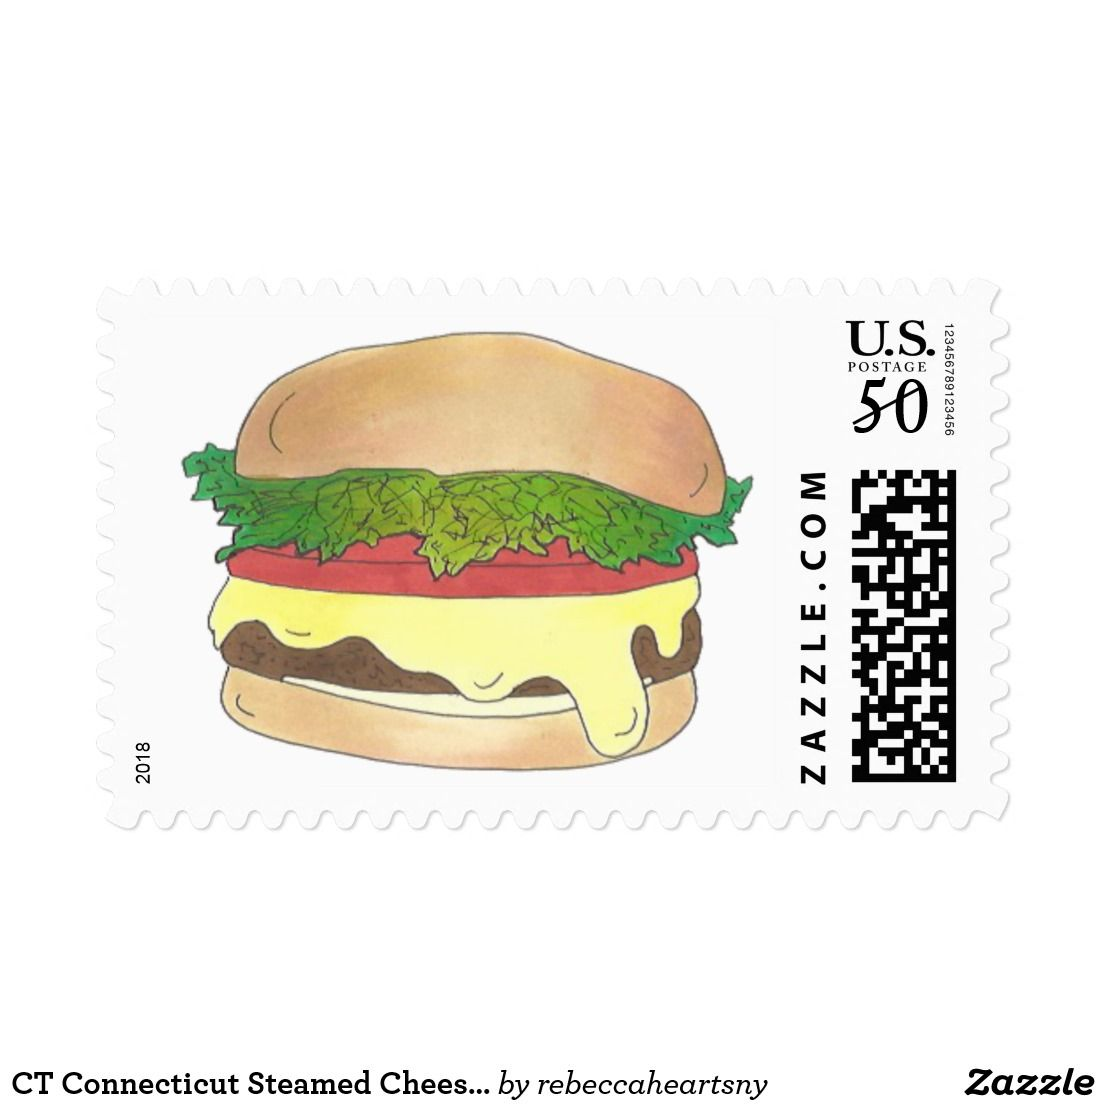 Ct Connecticut Steamed Cheese Burger Cheeseburger Postage Stamp Design Stamp Design Self Inking Stamps